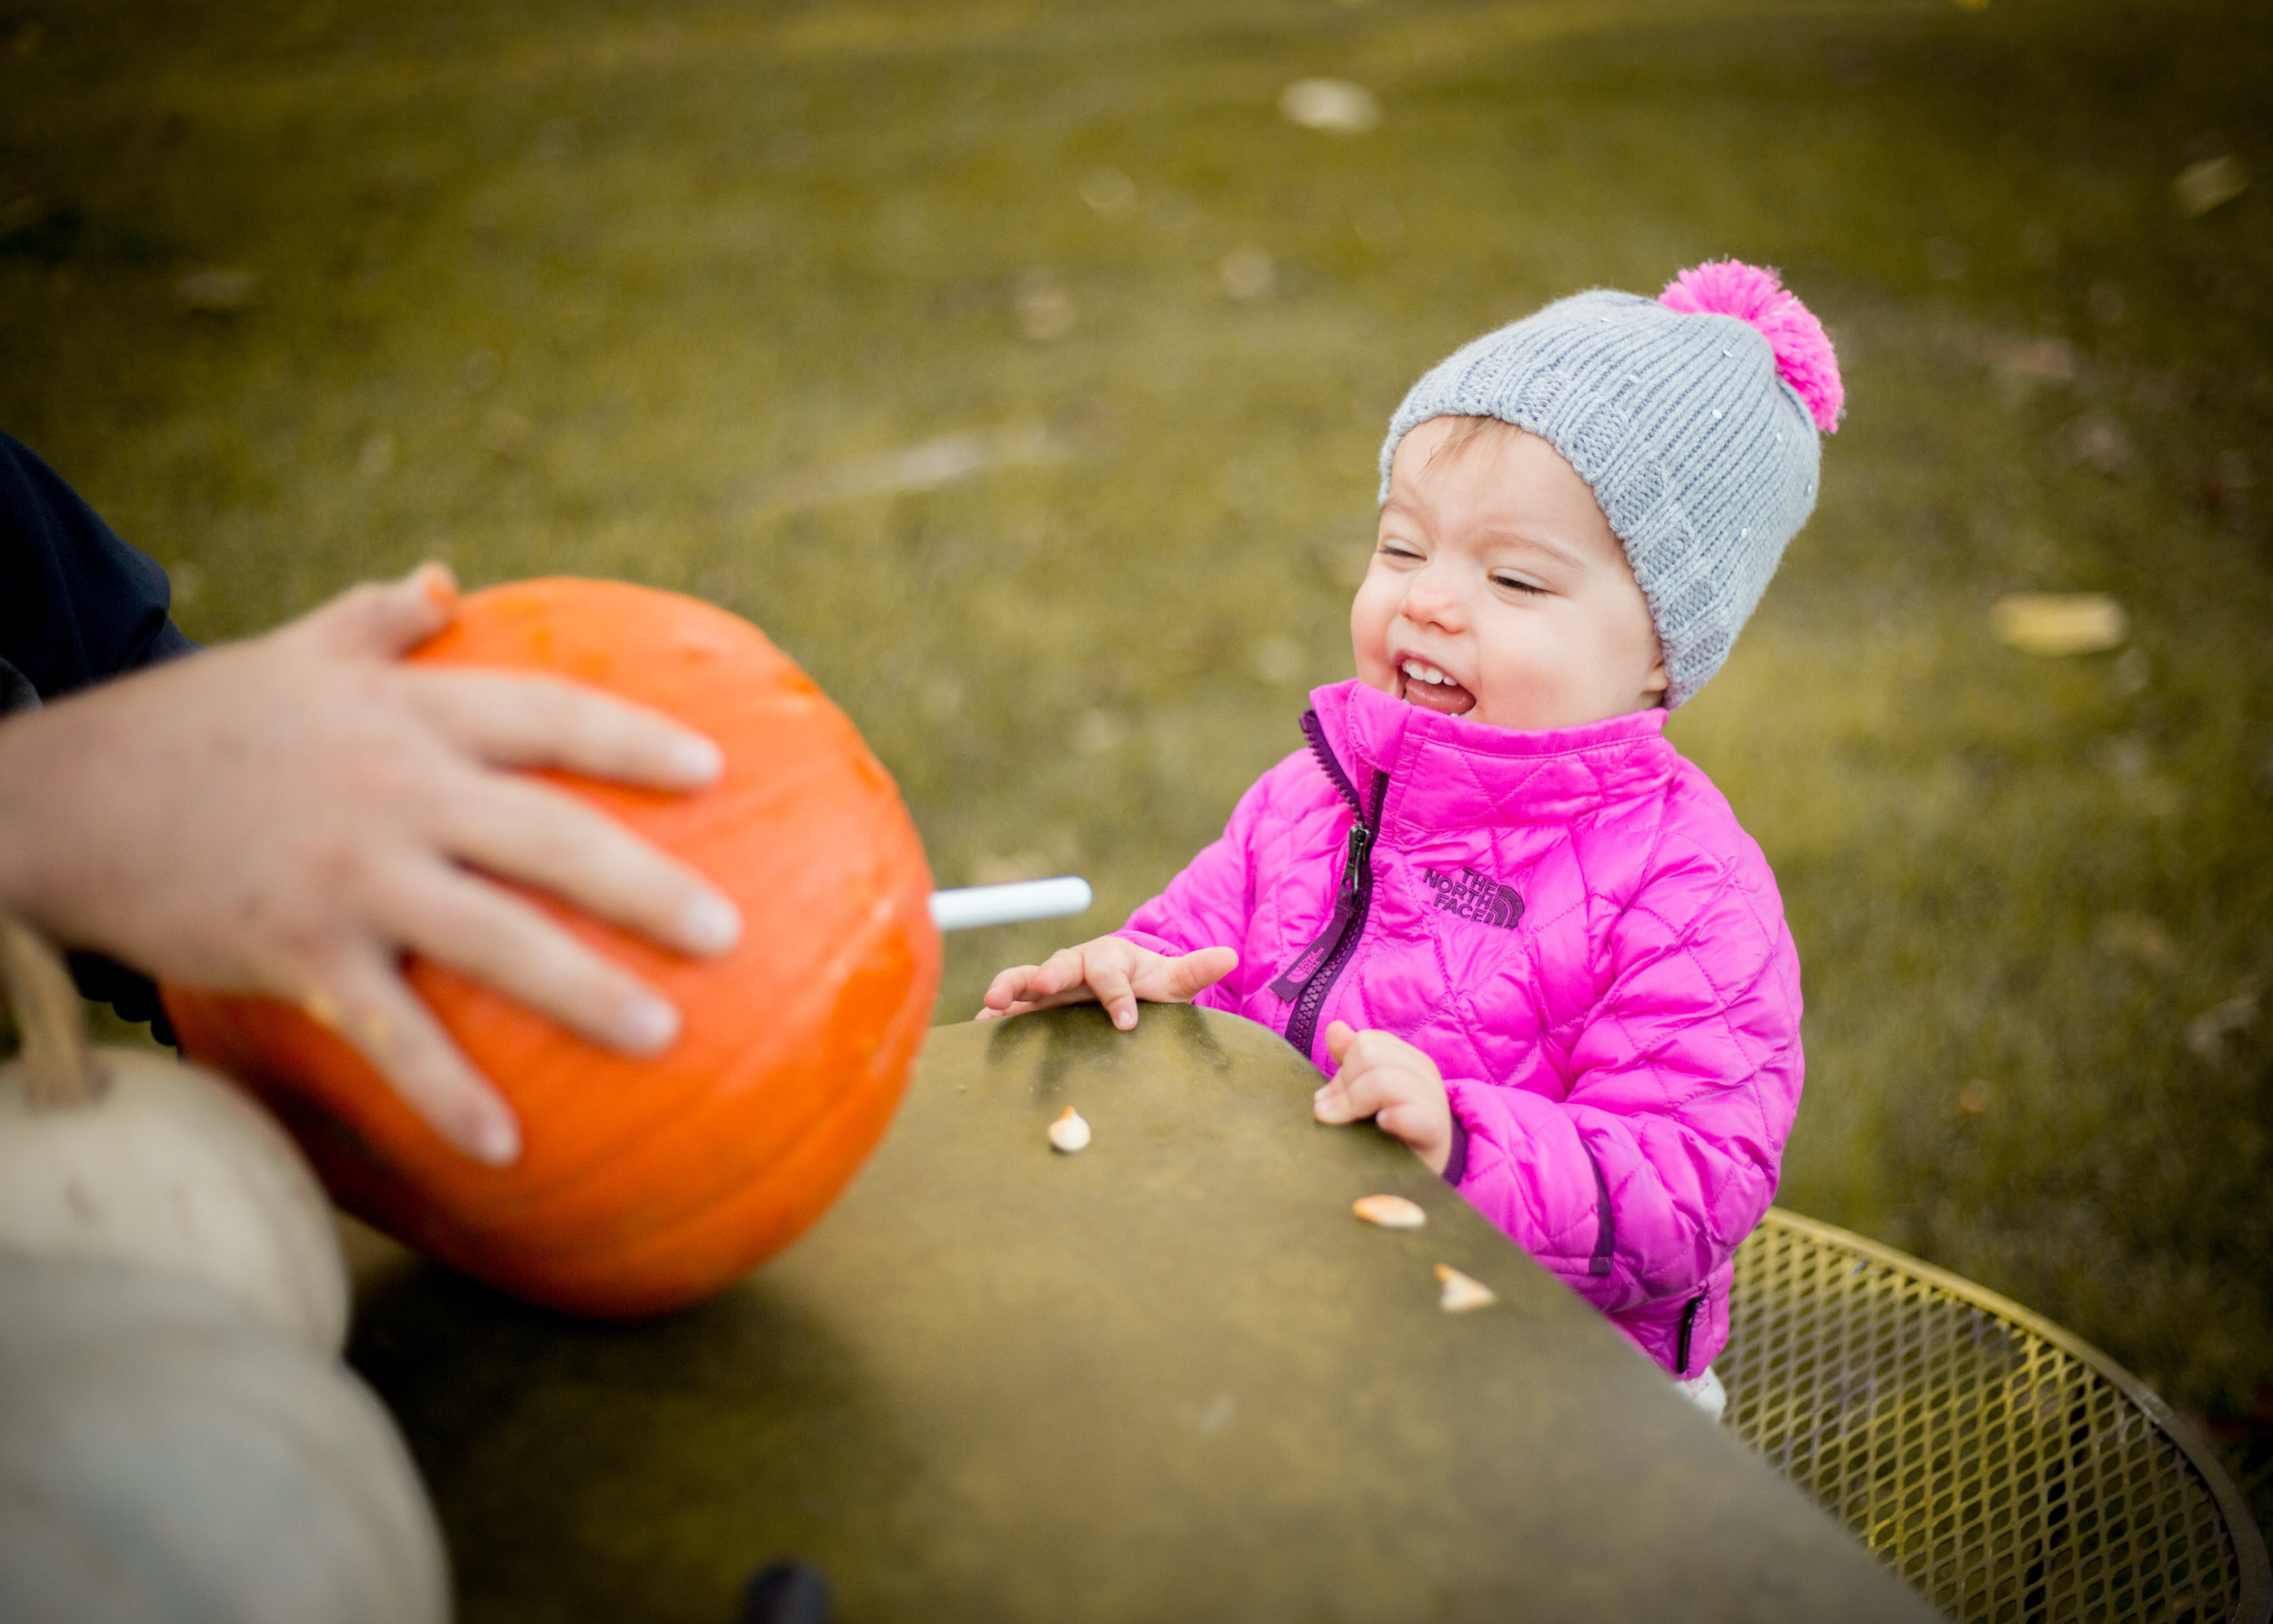 First time carving pumpkins? What a fantastic idea for a session!